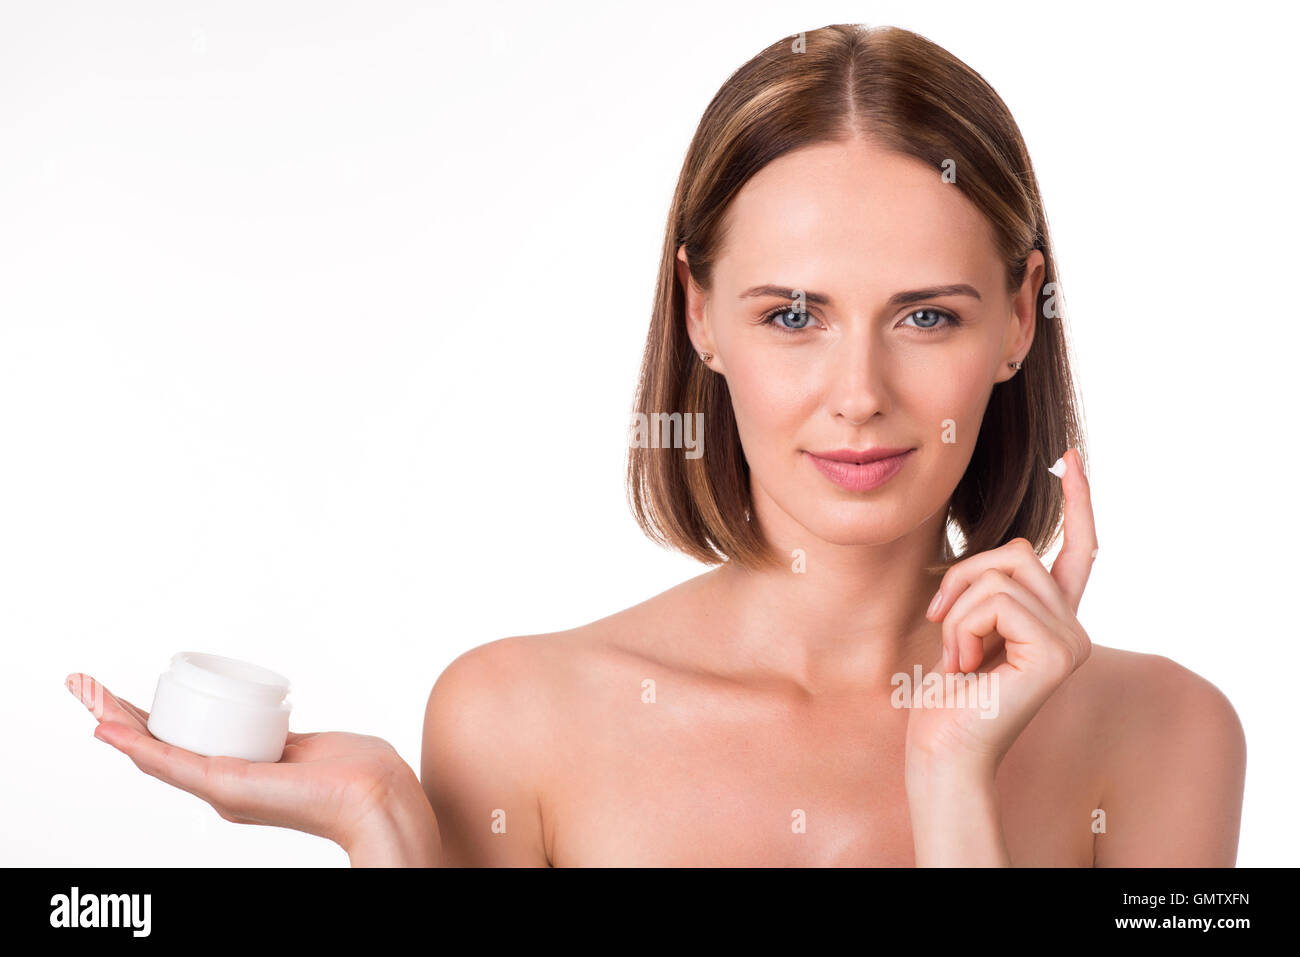 Attractive young woman holding cream - Stock Image